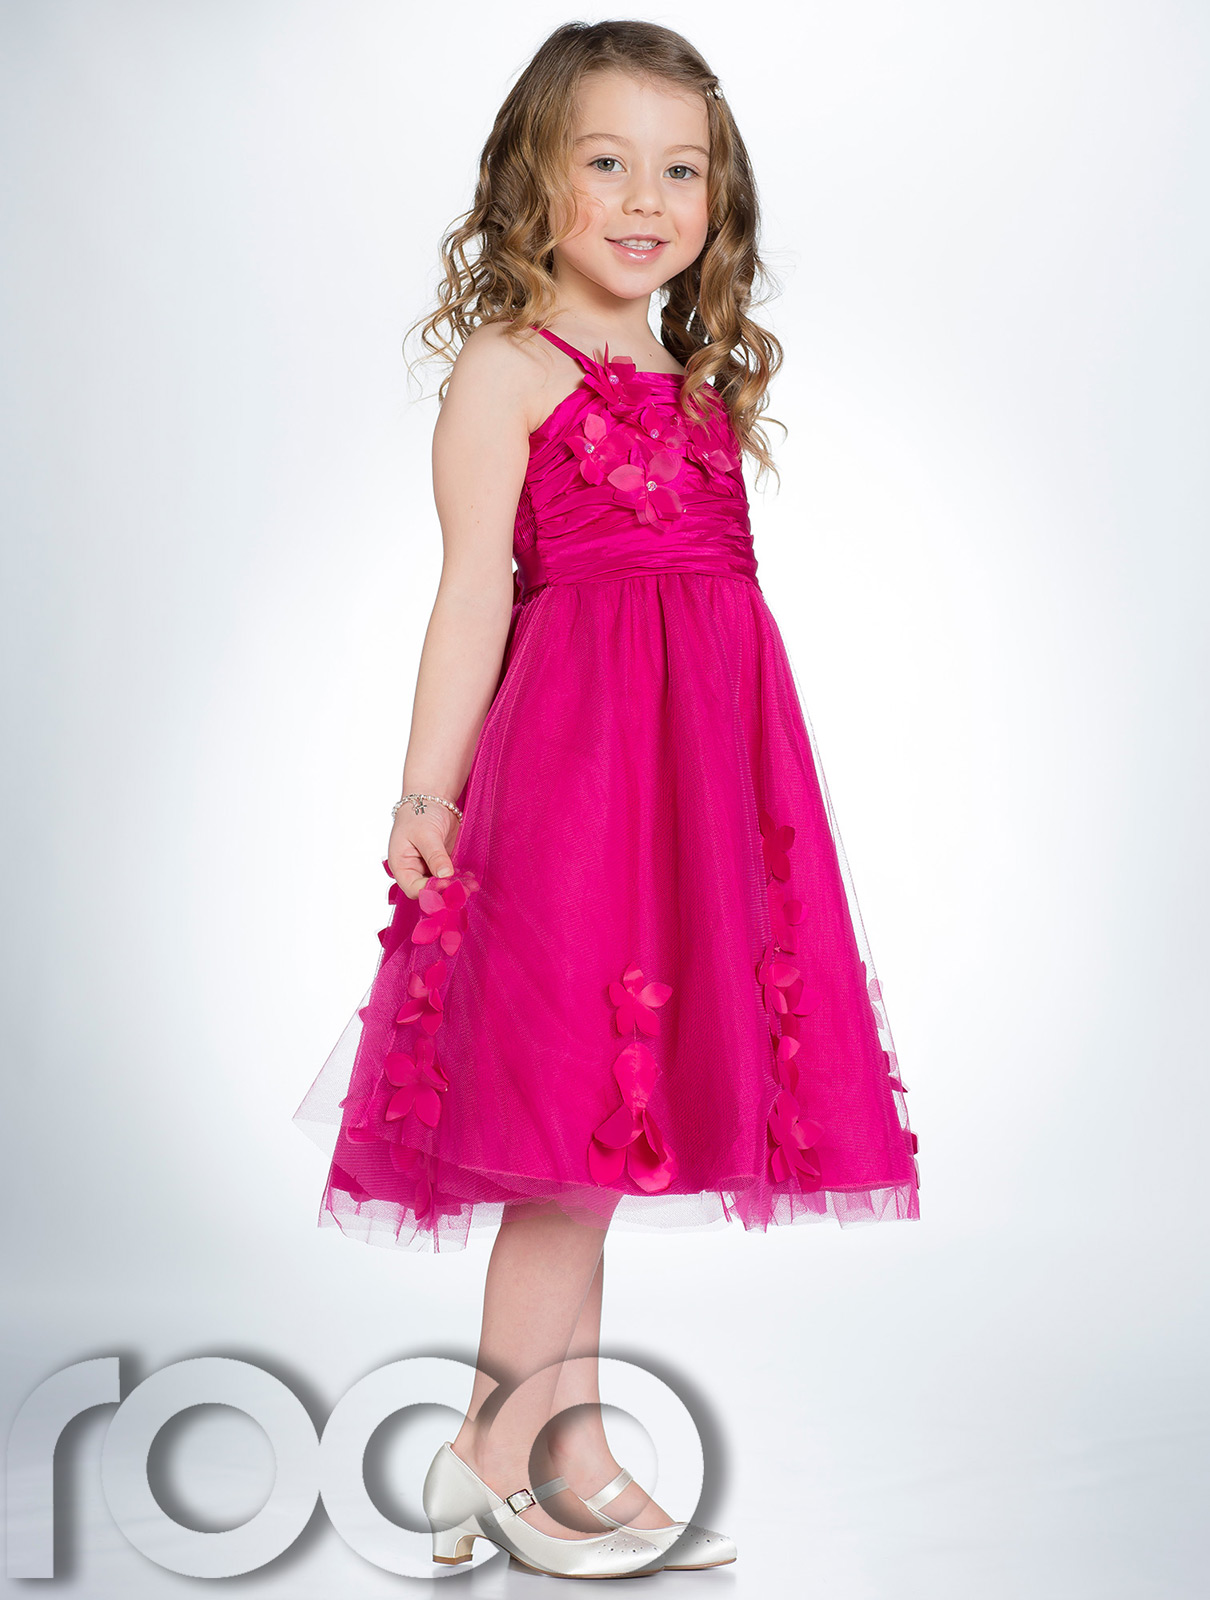 http://ebayshop.rococlothing.co.uk/listings/products/peppermint/dresses/cs110/hot%20pink/large/4.jpg Hot Pink Dress For Girls